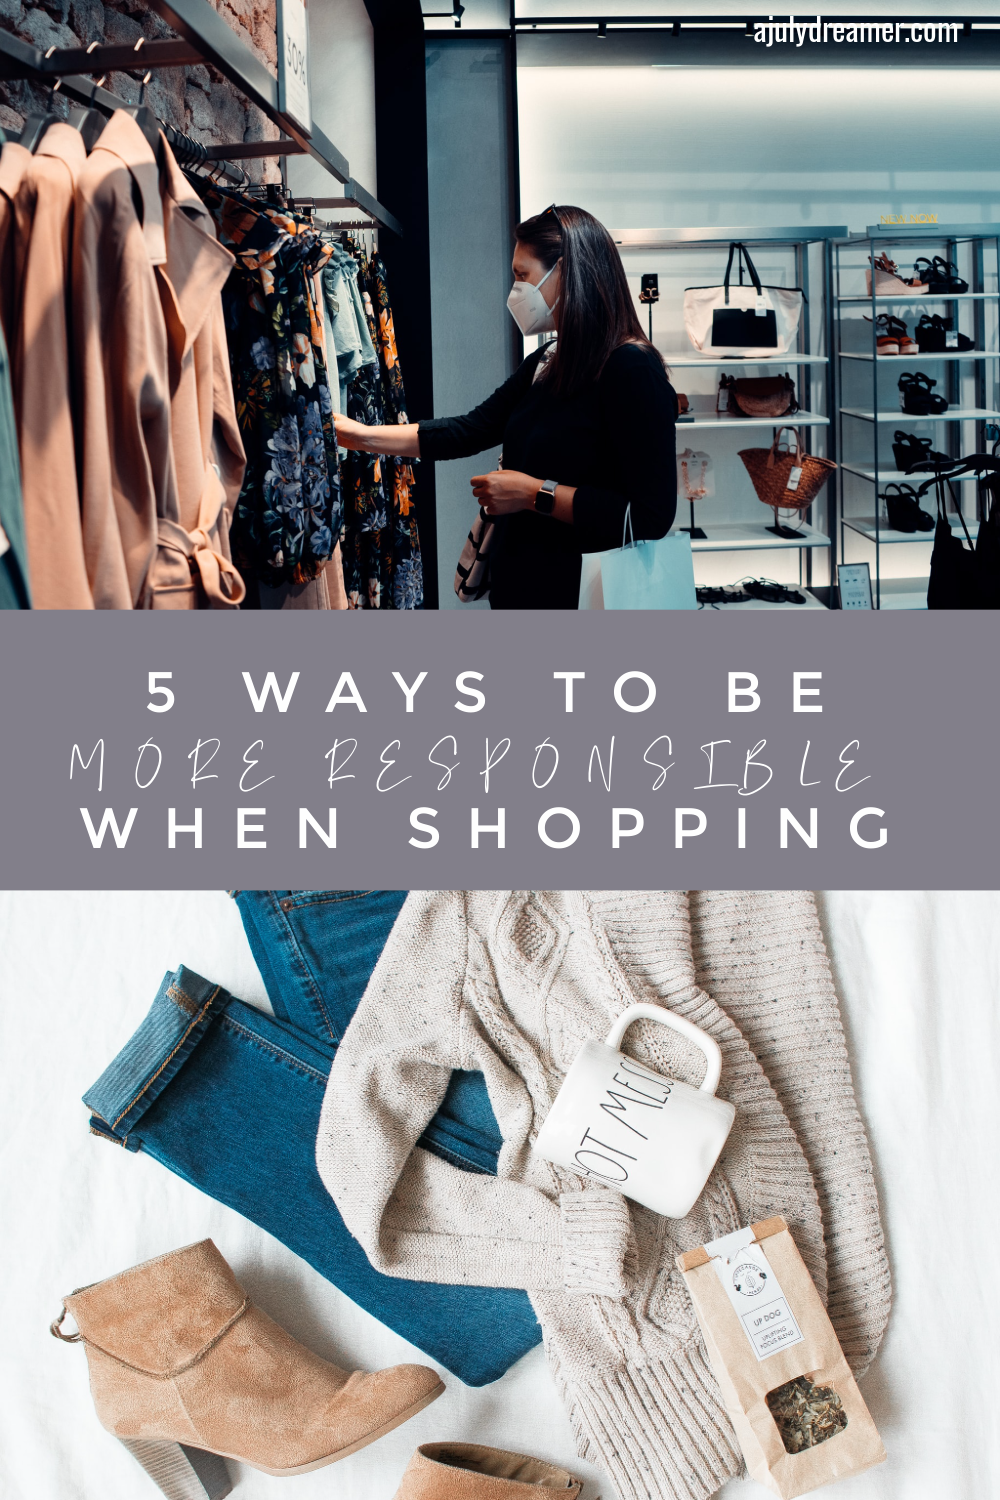 With shops gearing to open soon, I thought I share 5 ways to be more responsible when shopping, whether you are shopping for back to school or lounge wear. I mean, who doesn't love shopping for clothes, shoes, and accessories?